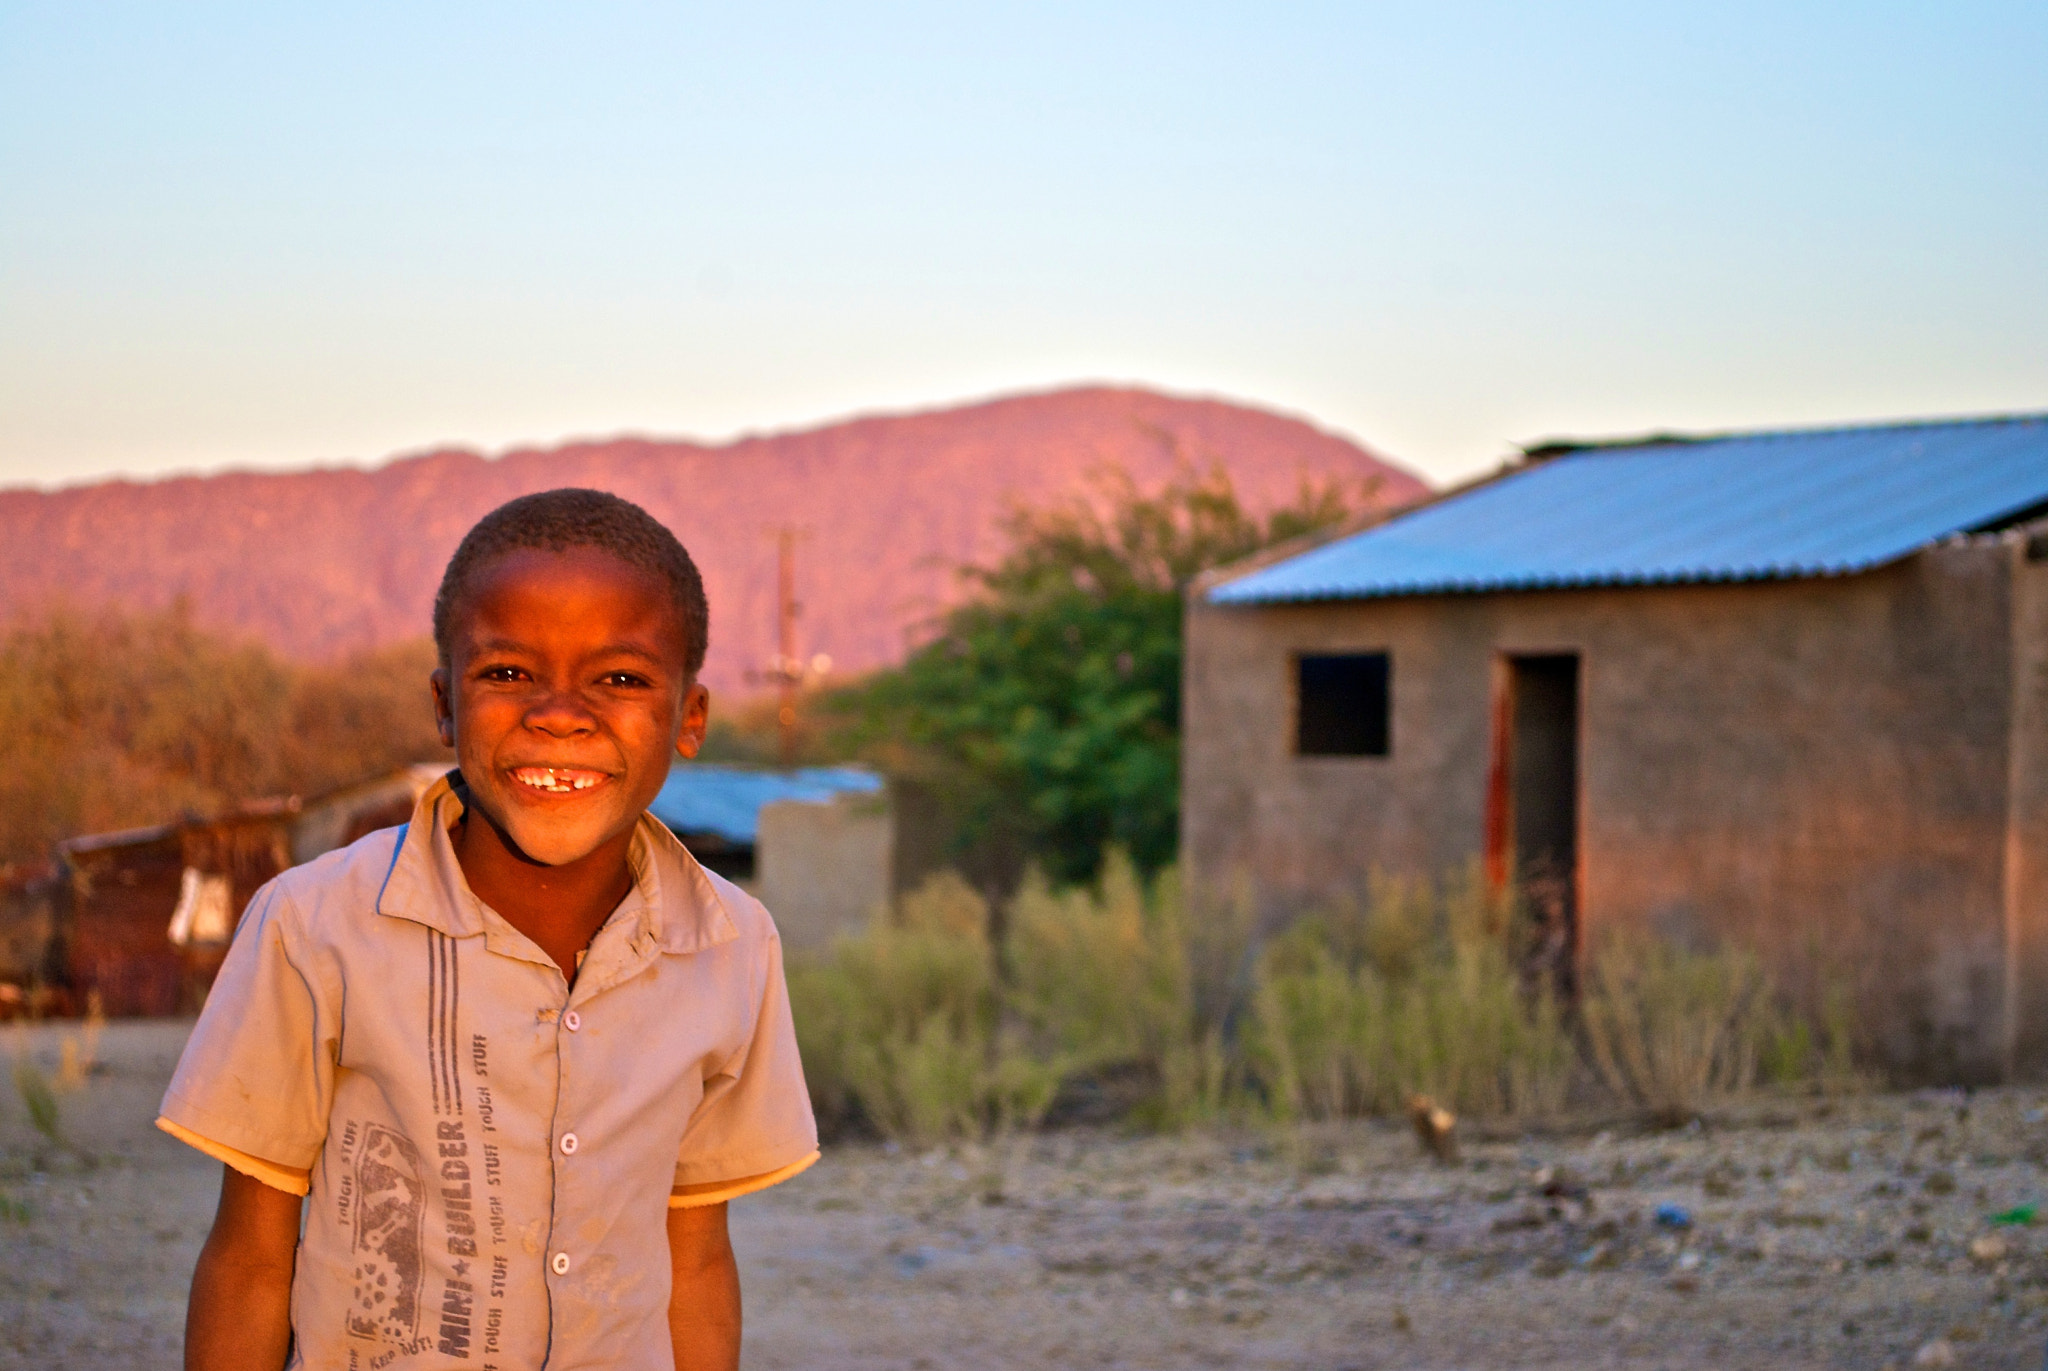 Photograph Namibian Smile by Seb Loram on 500px